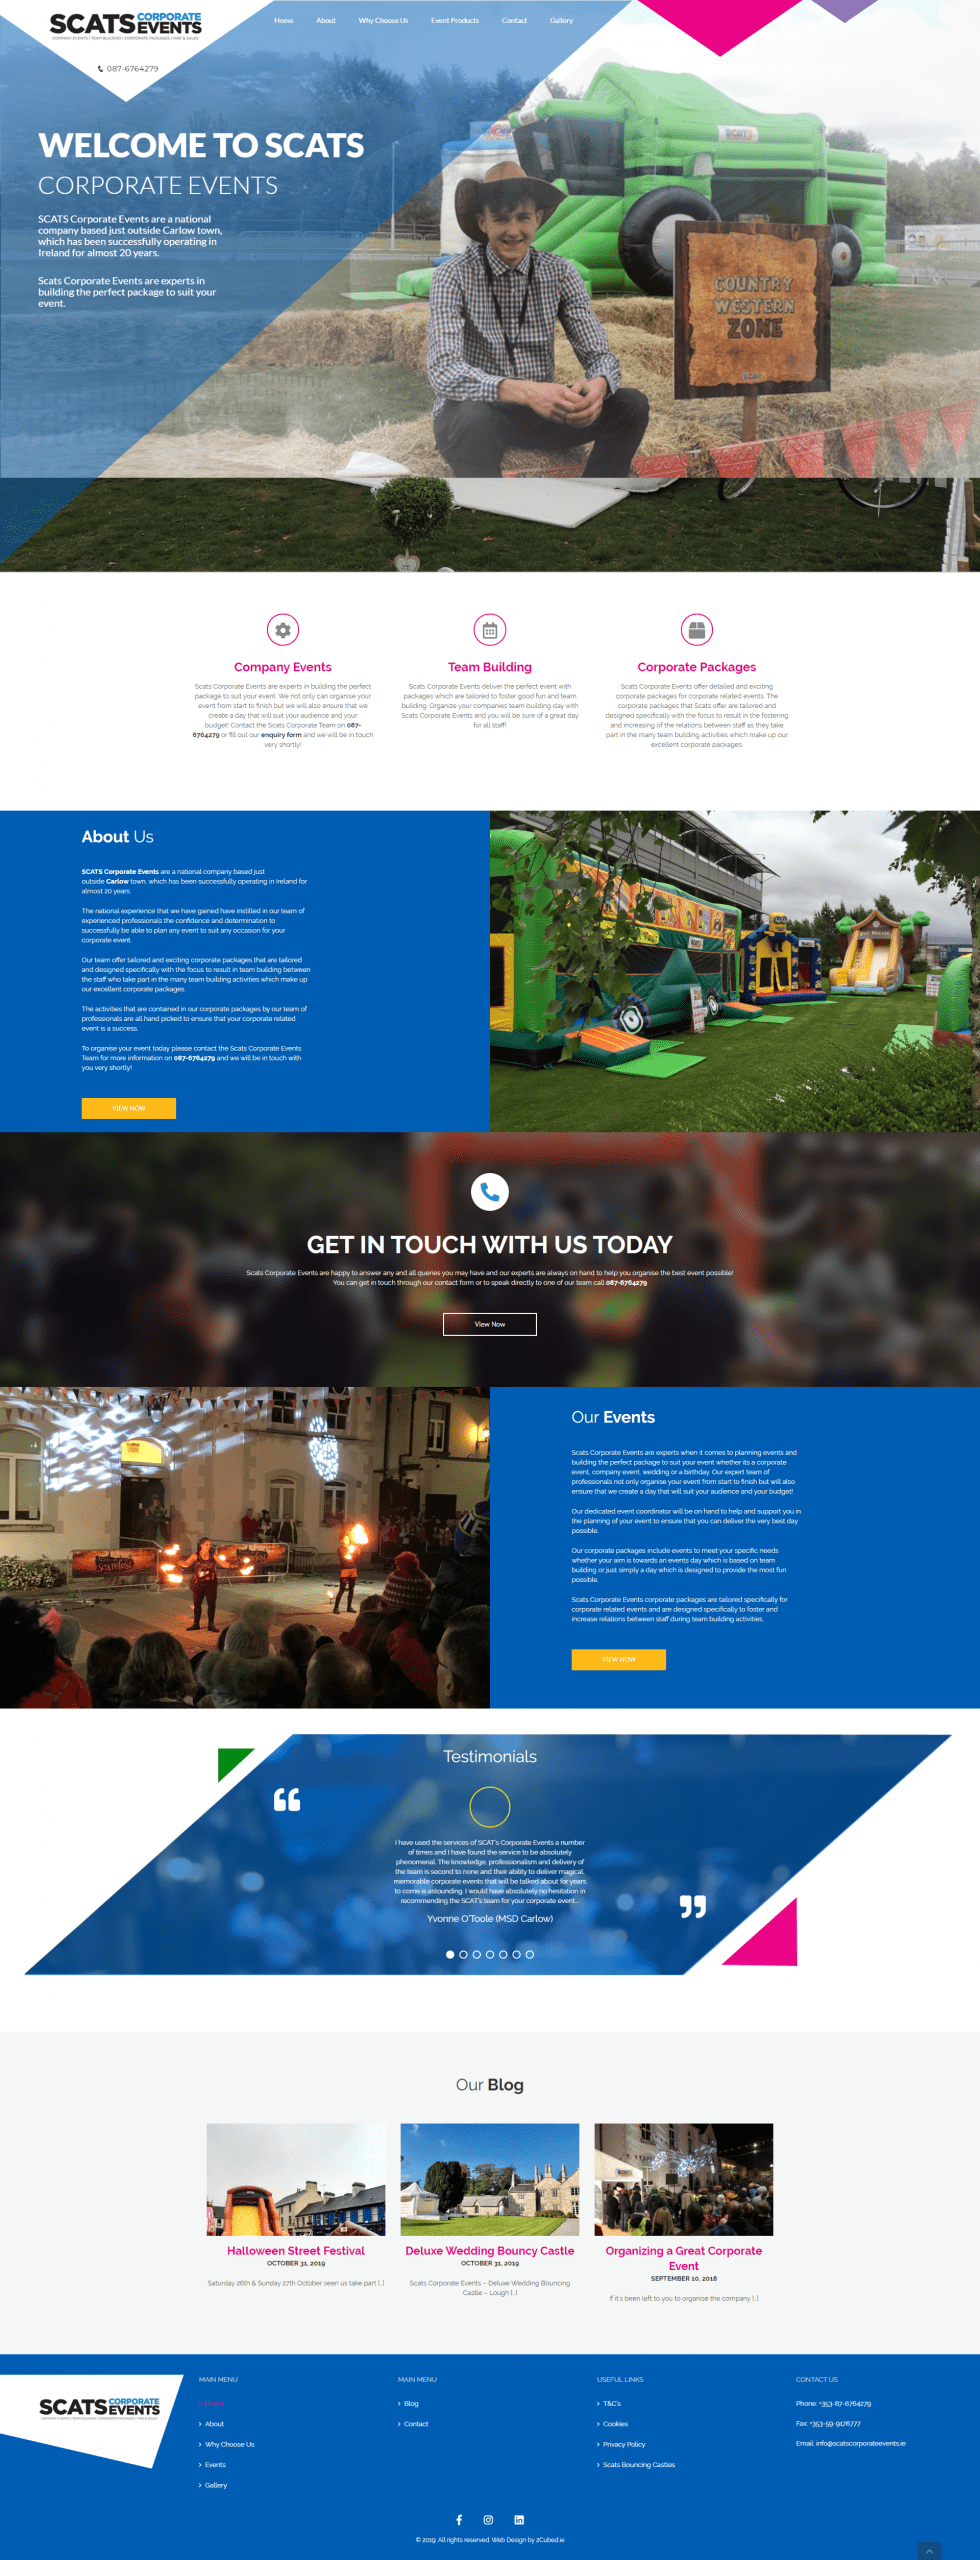 scats corporate events